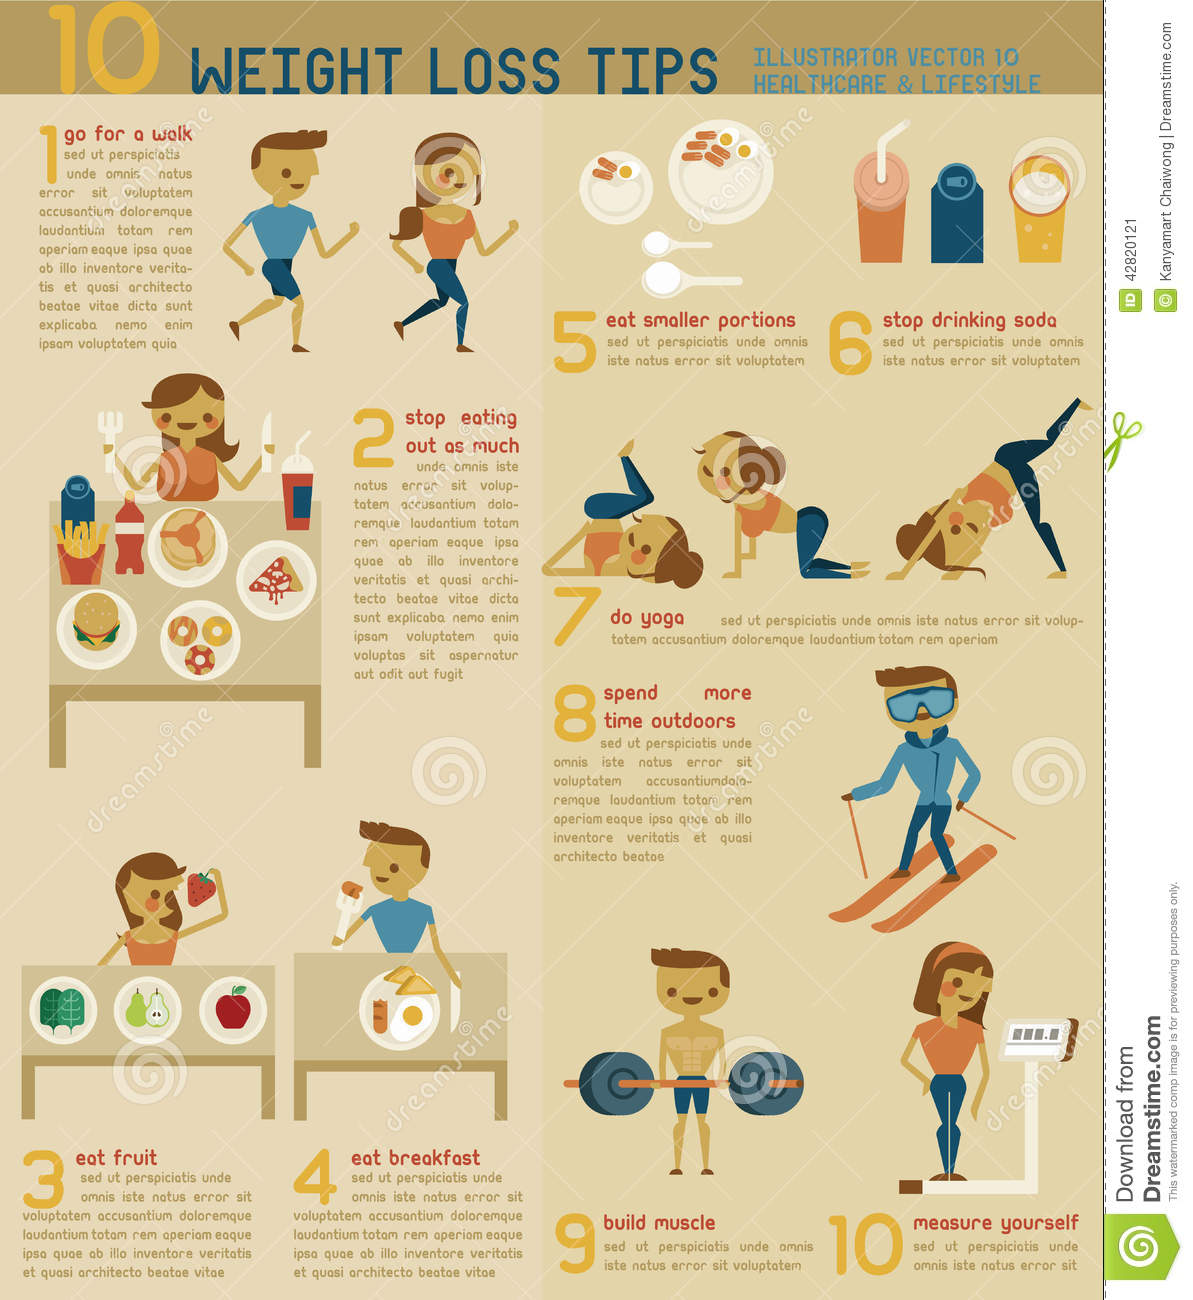 10 Weight Loss Tips Stock Vector - Image: 42820121